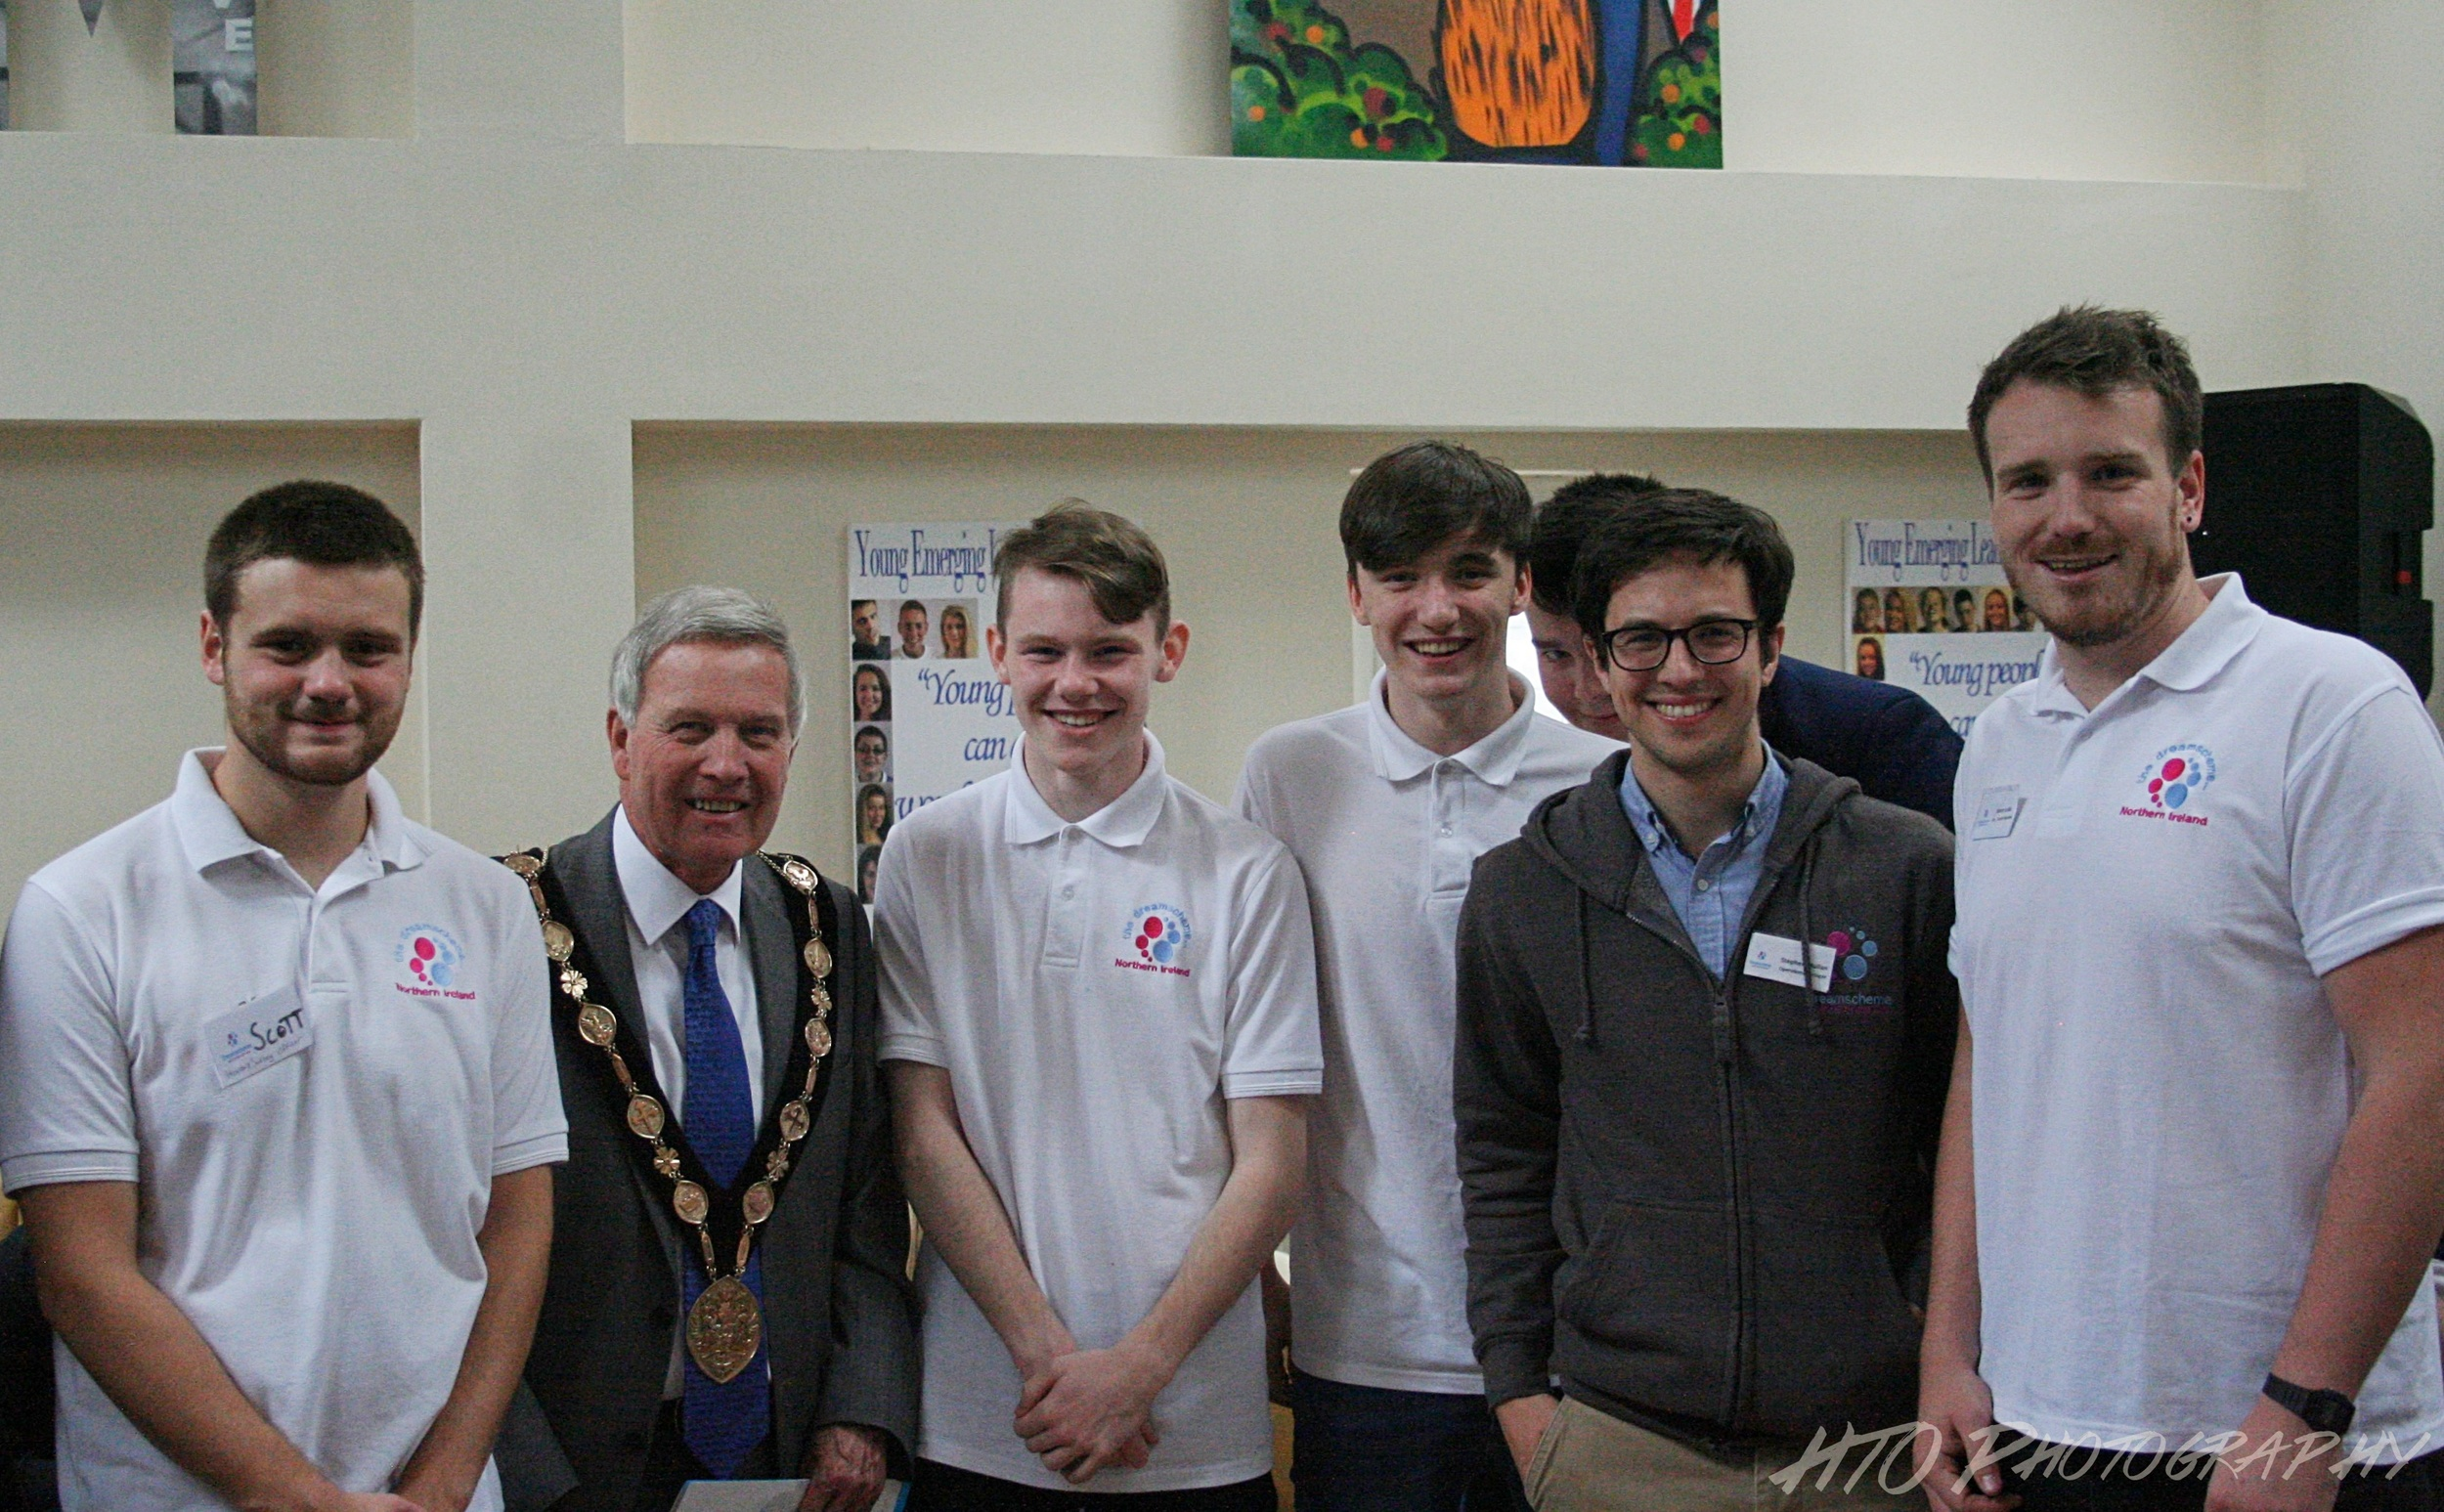 Mayor of Lisburn & Castlereagh City Council, Councillor Brian Bloomfield with Dreamscheme staff and young people